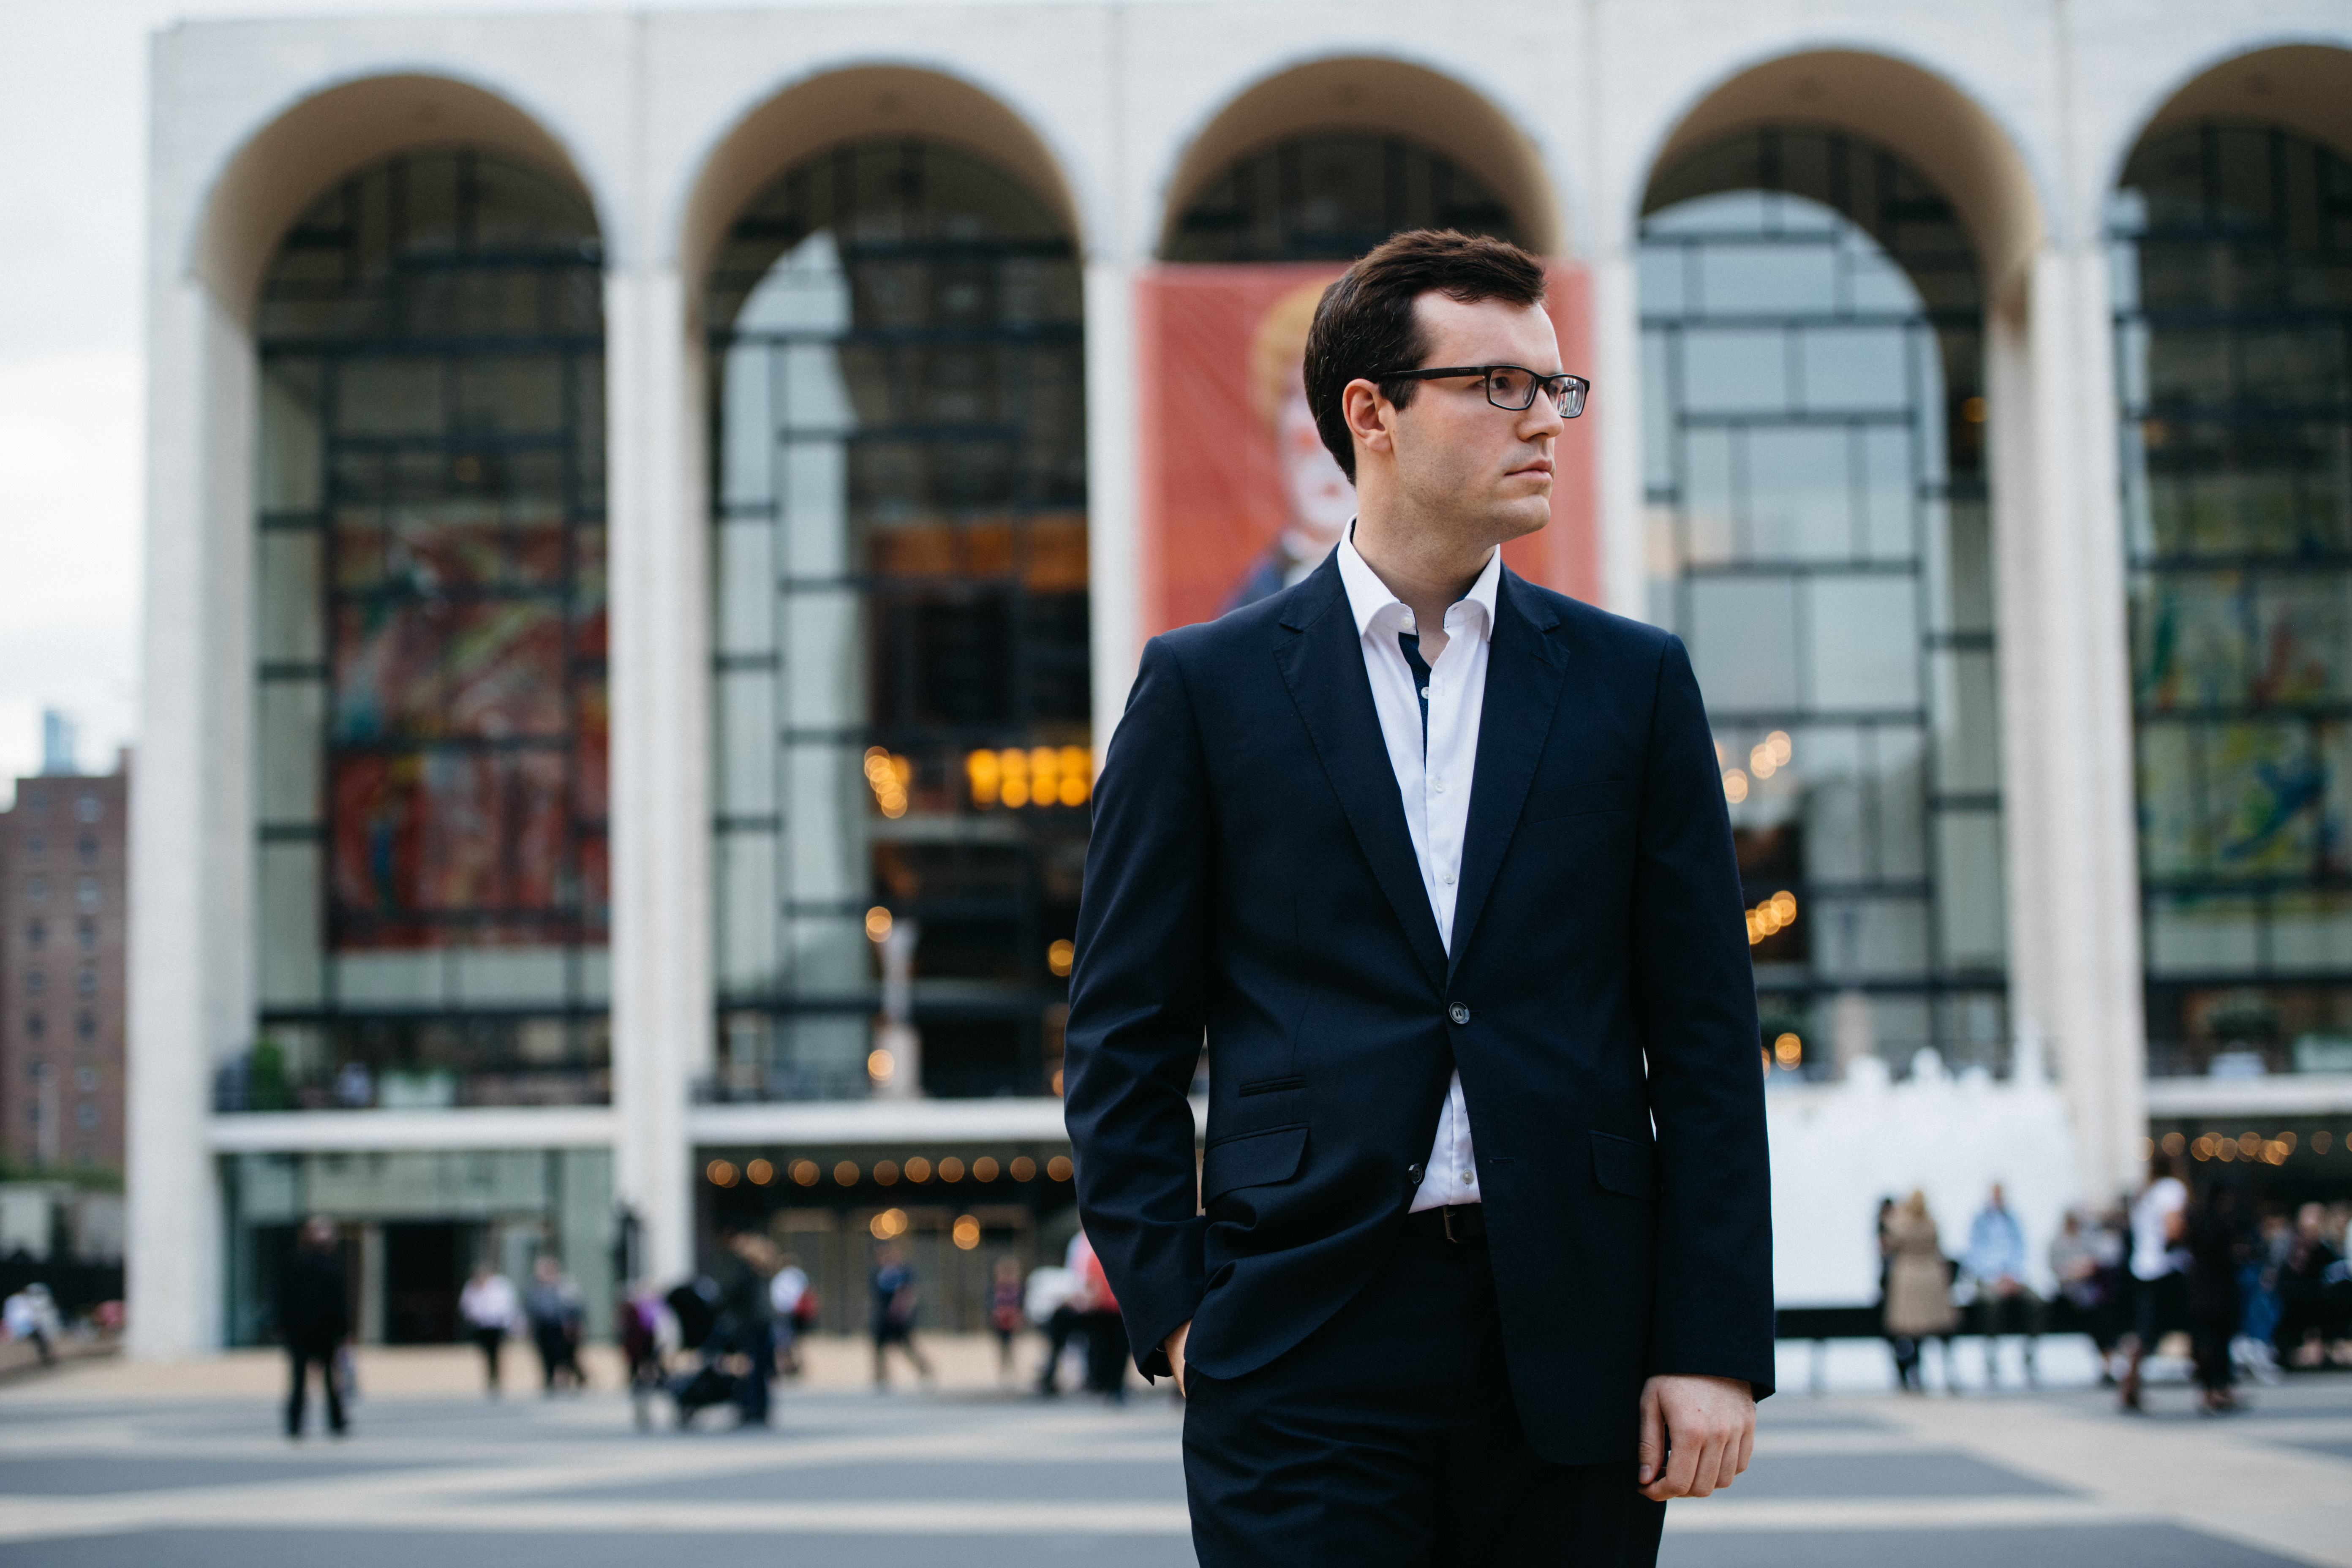 Metropolitan Opera, Lincoln Center, New York